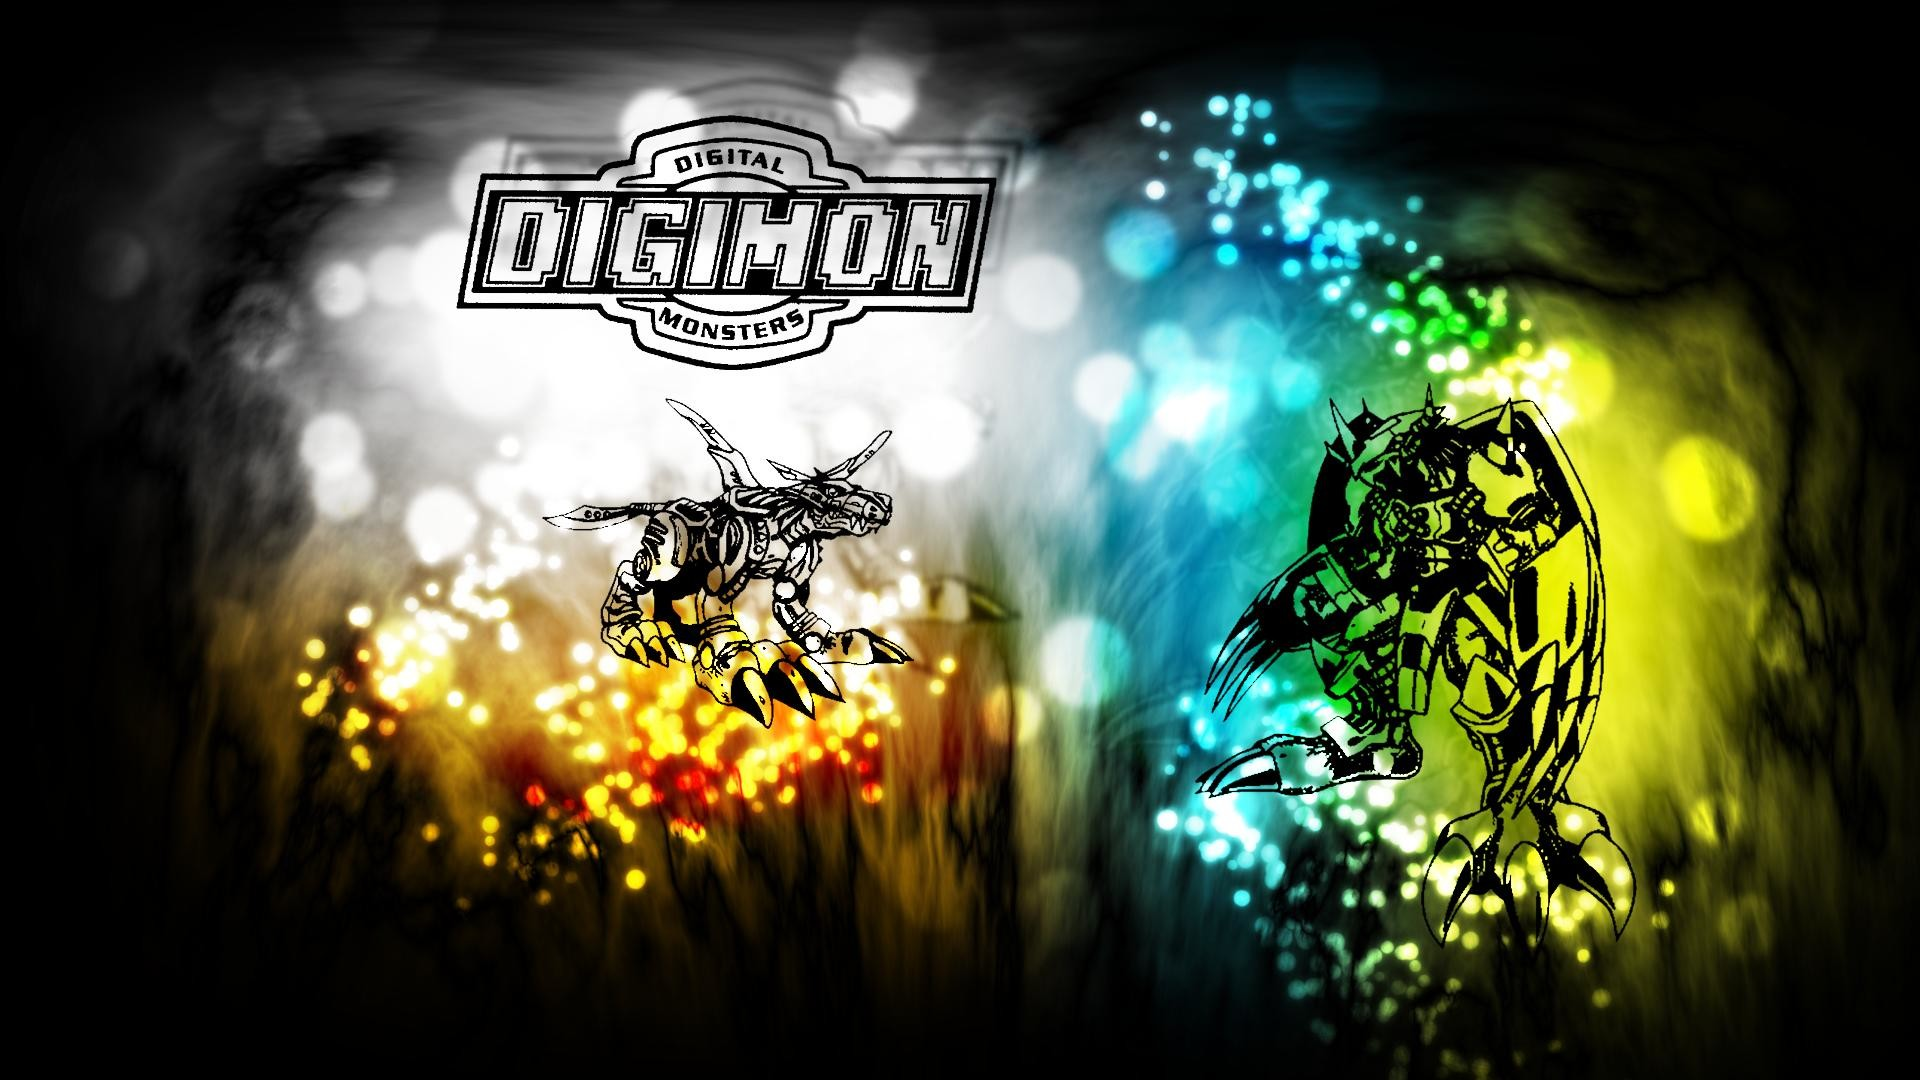 Res: 1920x1080, Digimon Wallpapers - Wallpaper Cave